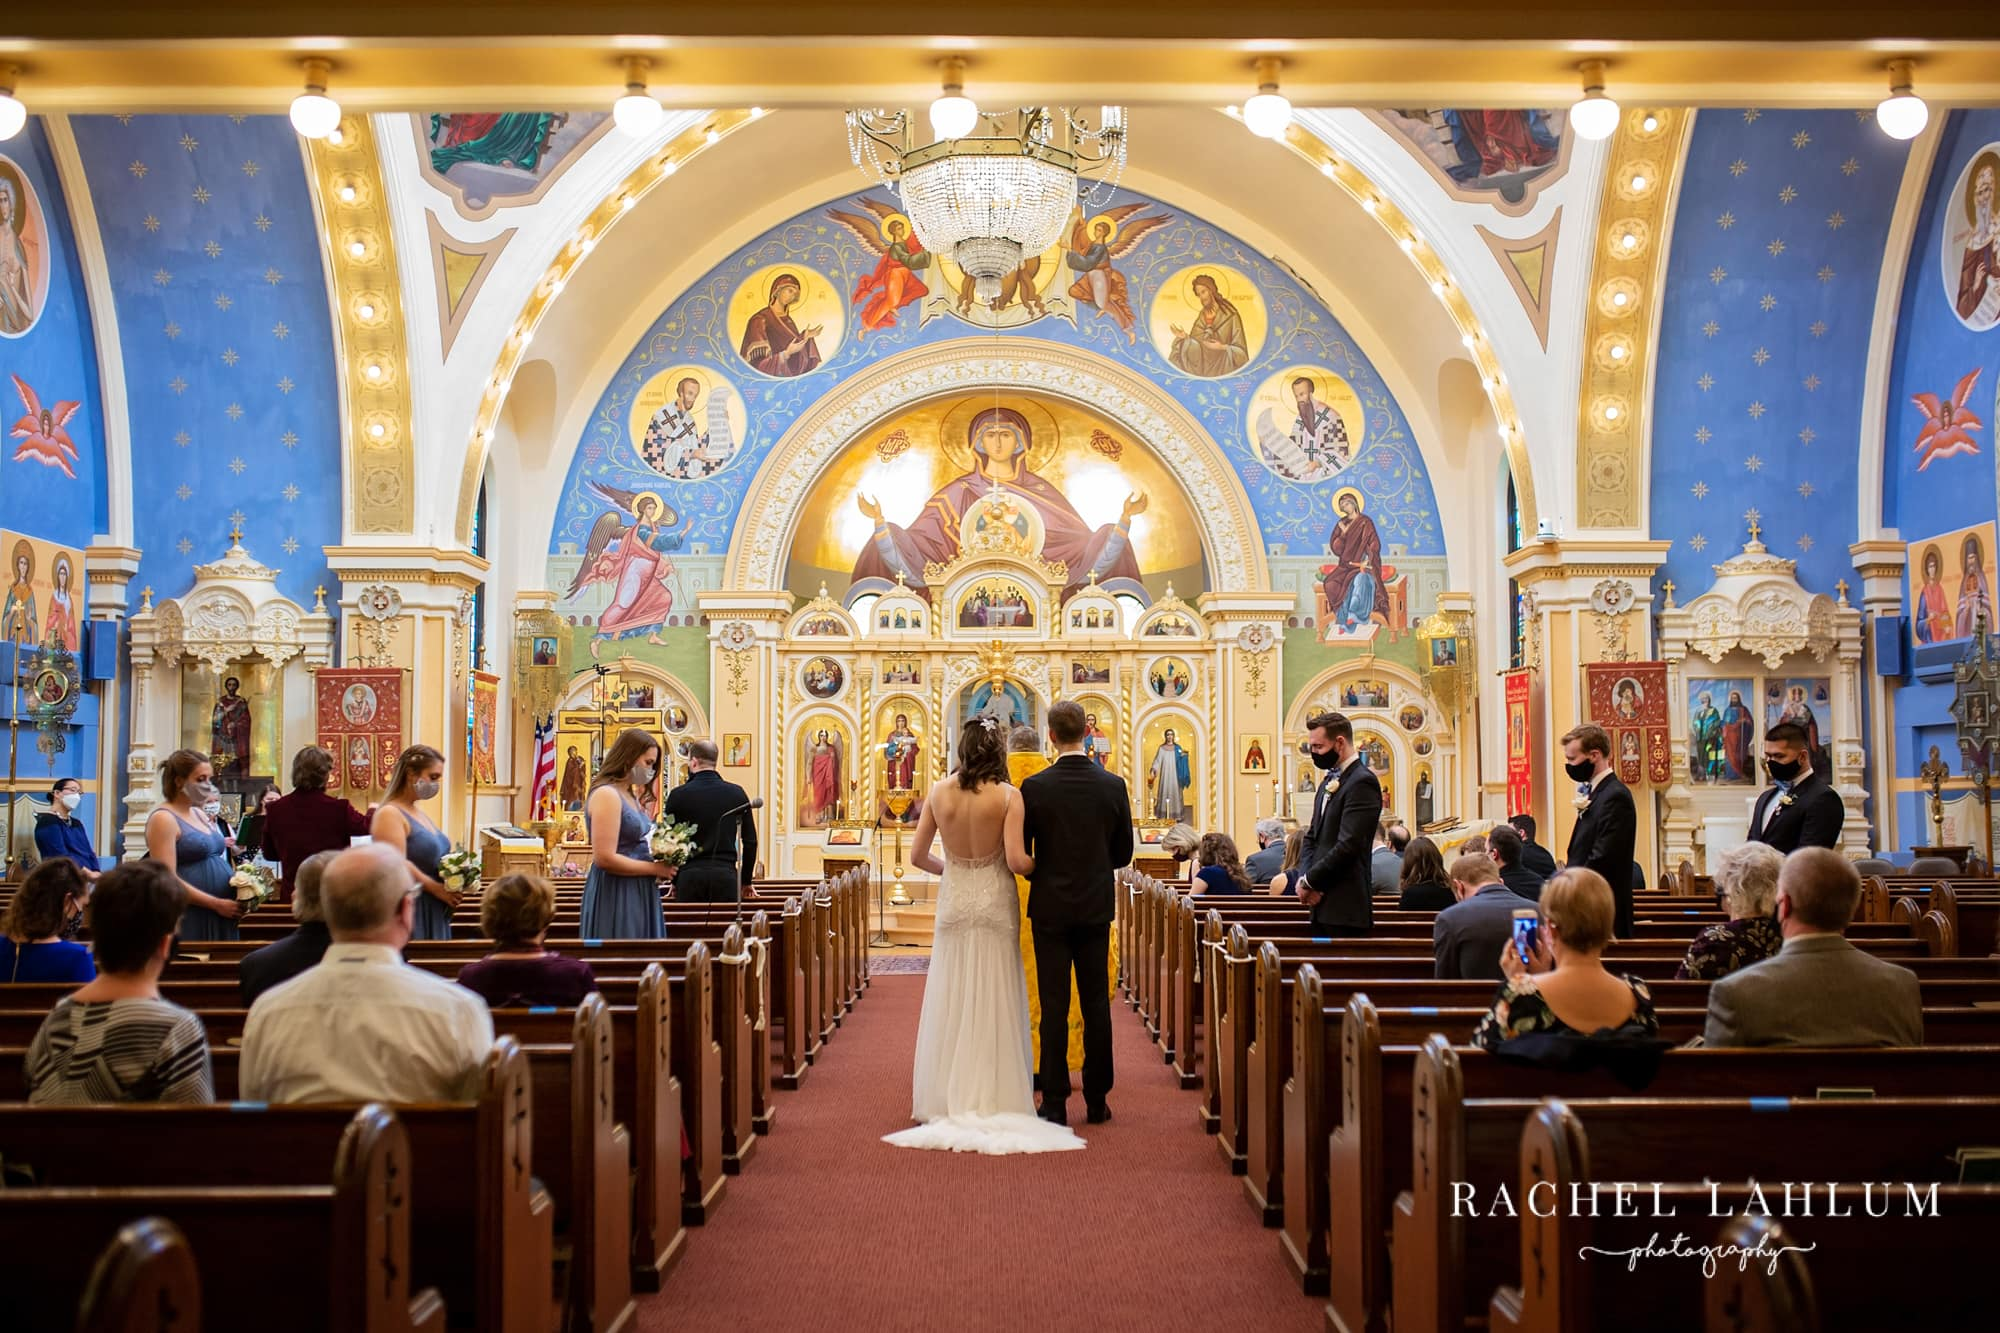 Bride and groom walk down the aisle at St. Mary's Orthodox Cathedral in Northeast Minneapolis.